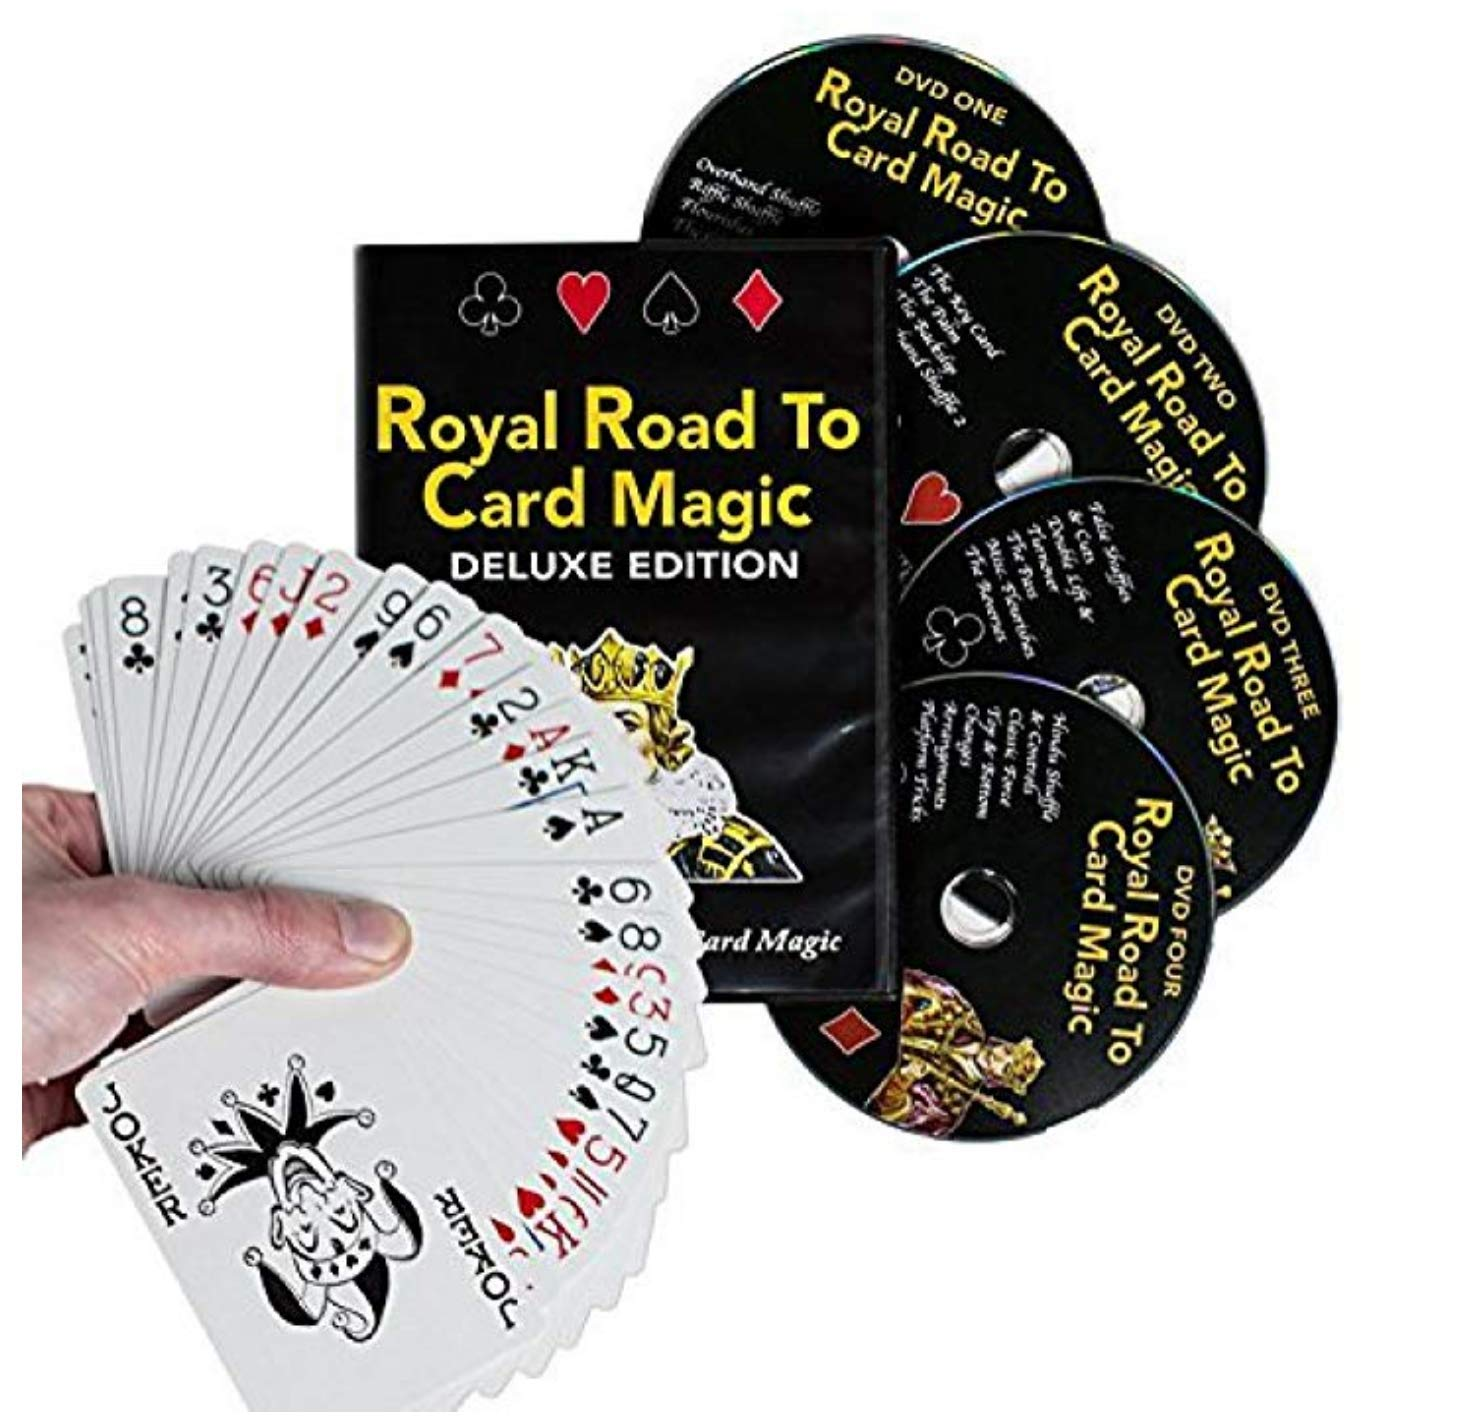 Magic Makers Royal Road to Card Magic Deluxe Magic Training - Complete Set Including a Delands Marked Deck - Over 100 Card Trick Effects from Beginner to Expert Skill Levels by Magic Makers